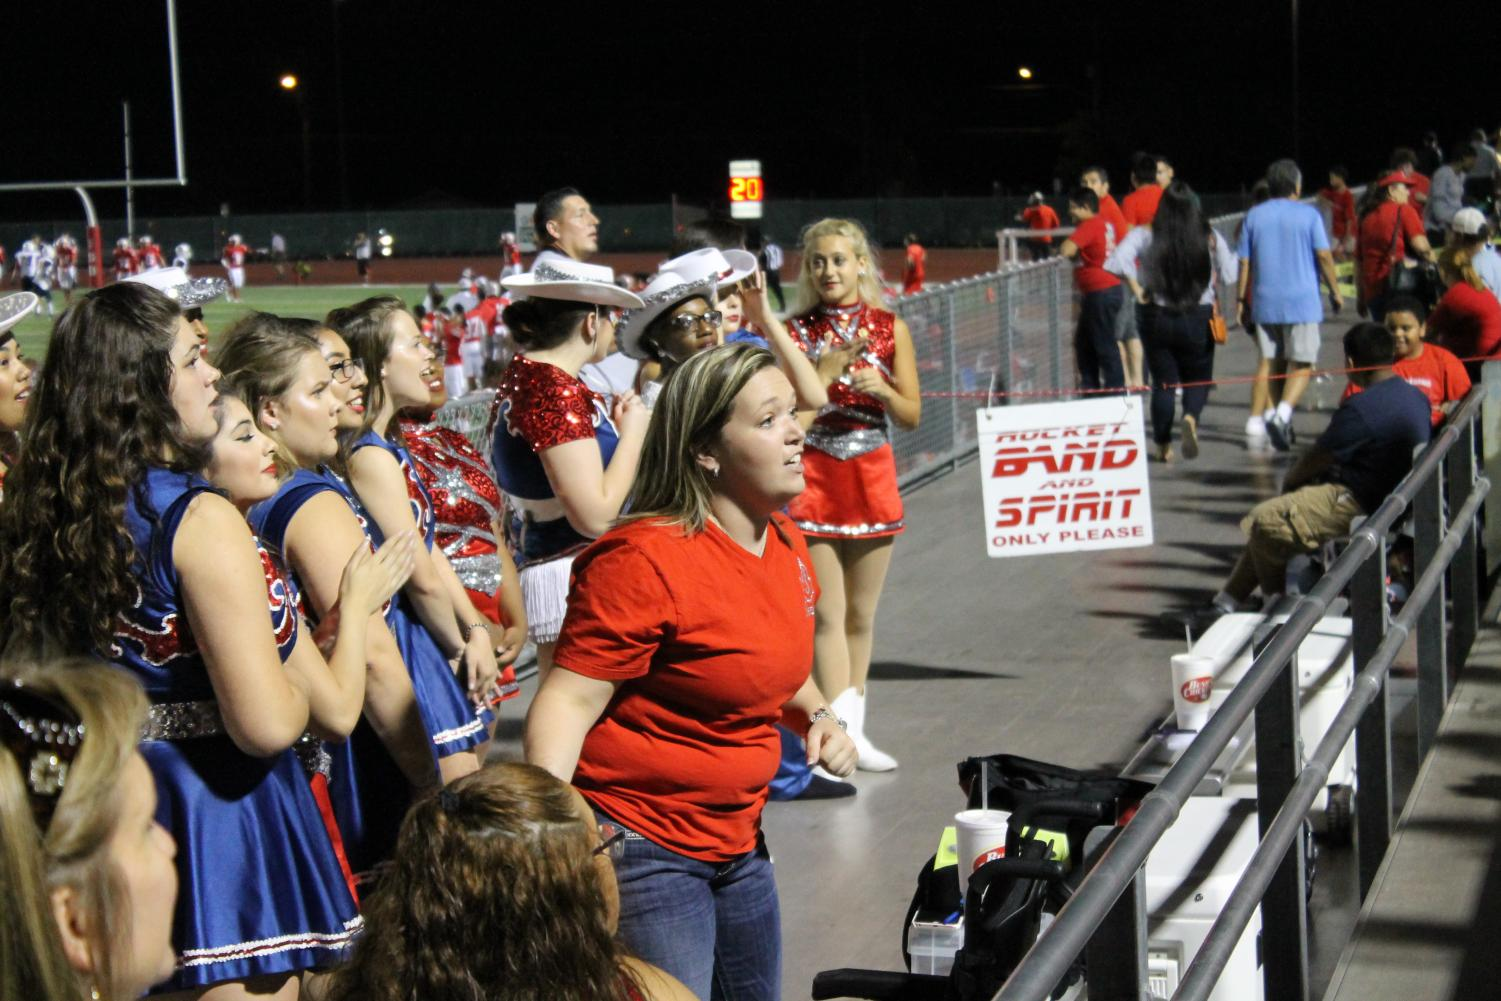 Ms. Lauryn McCarthy coaches her dancers during a football game at D.W. Rutledge Stadium. This is her second year as director of the organization.